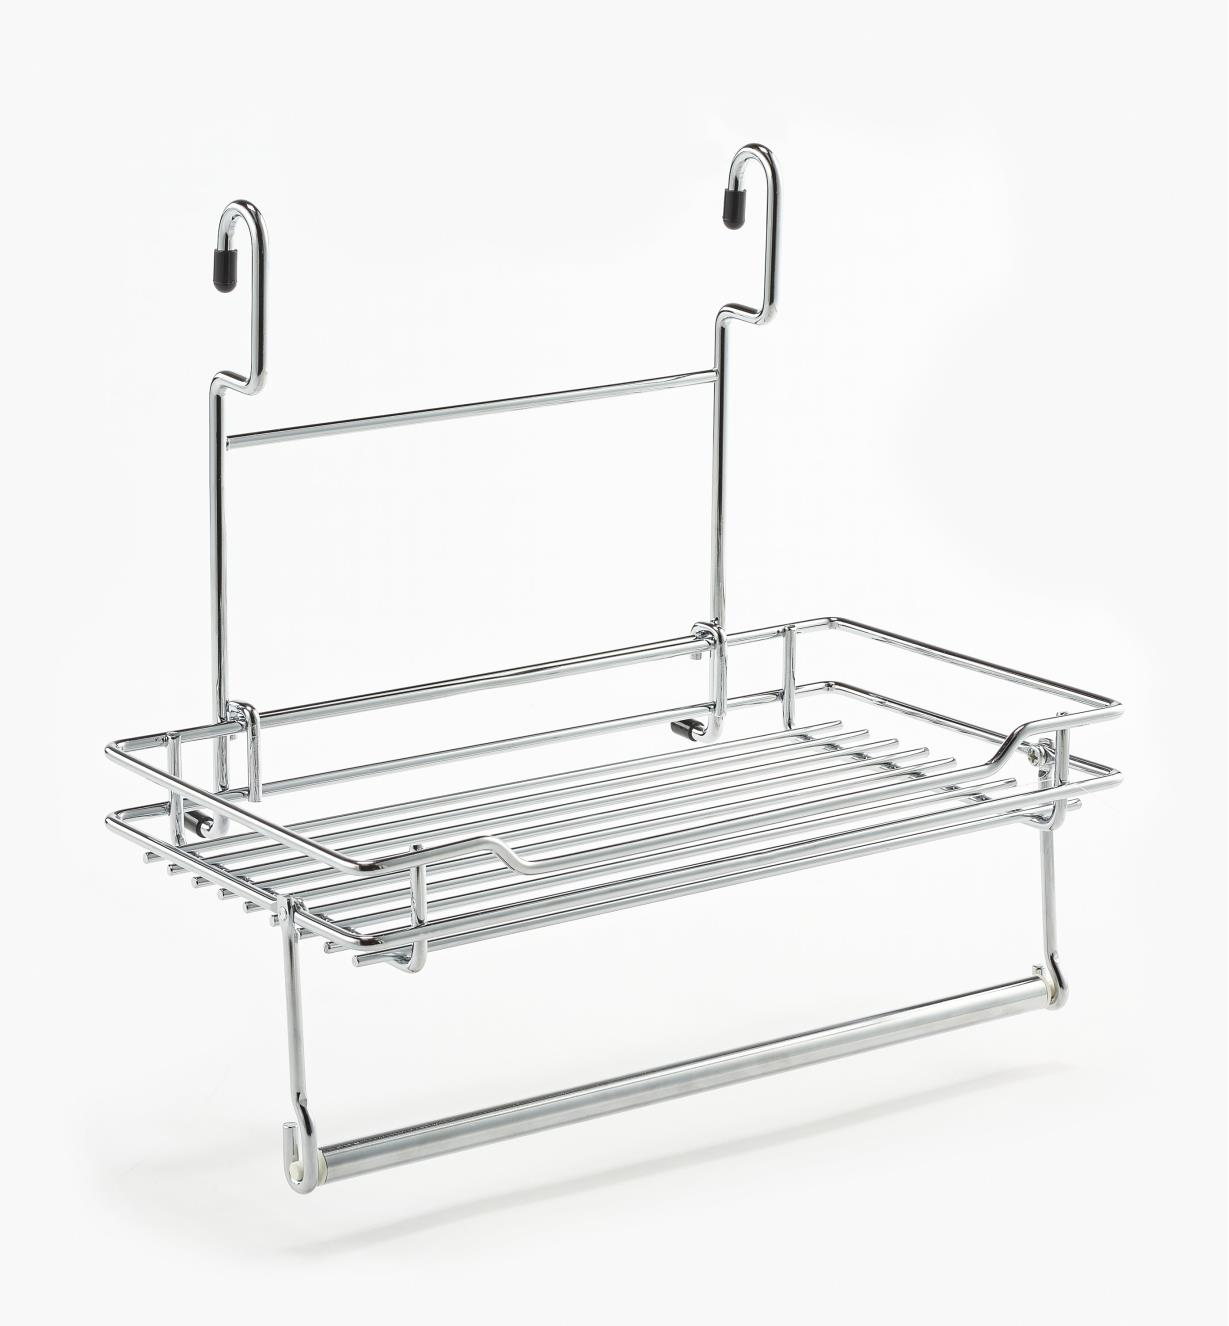 12K3438 - Shelf & Towel Rack